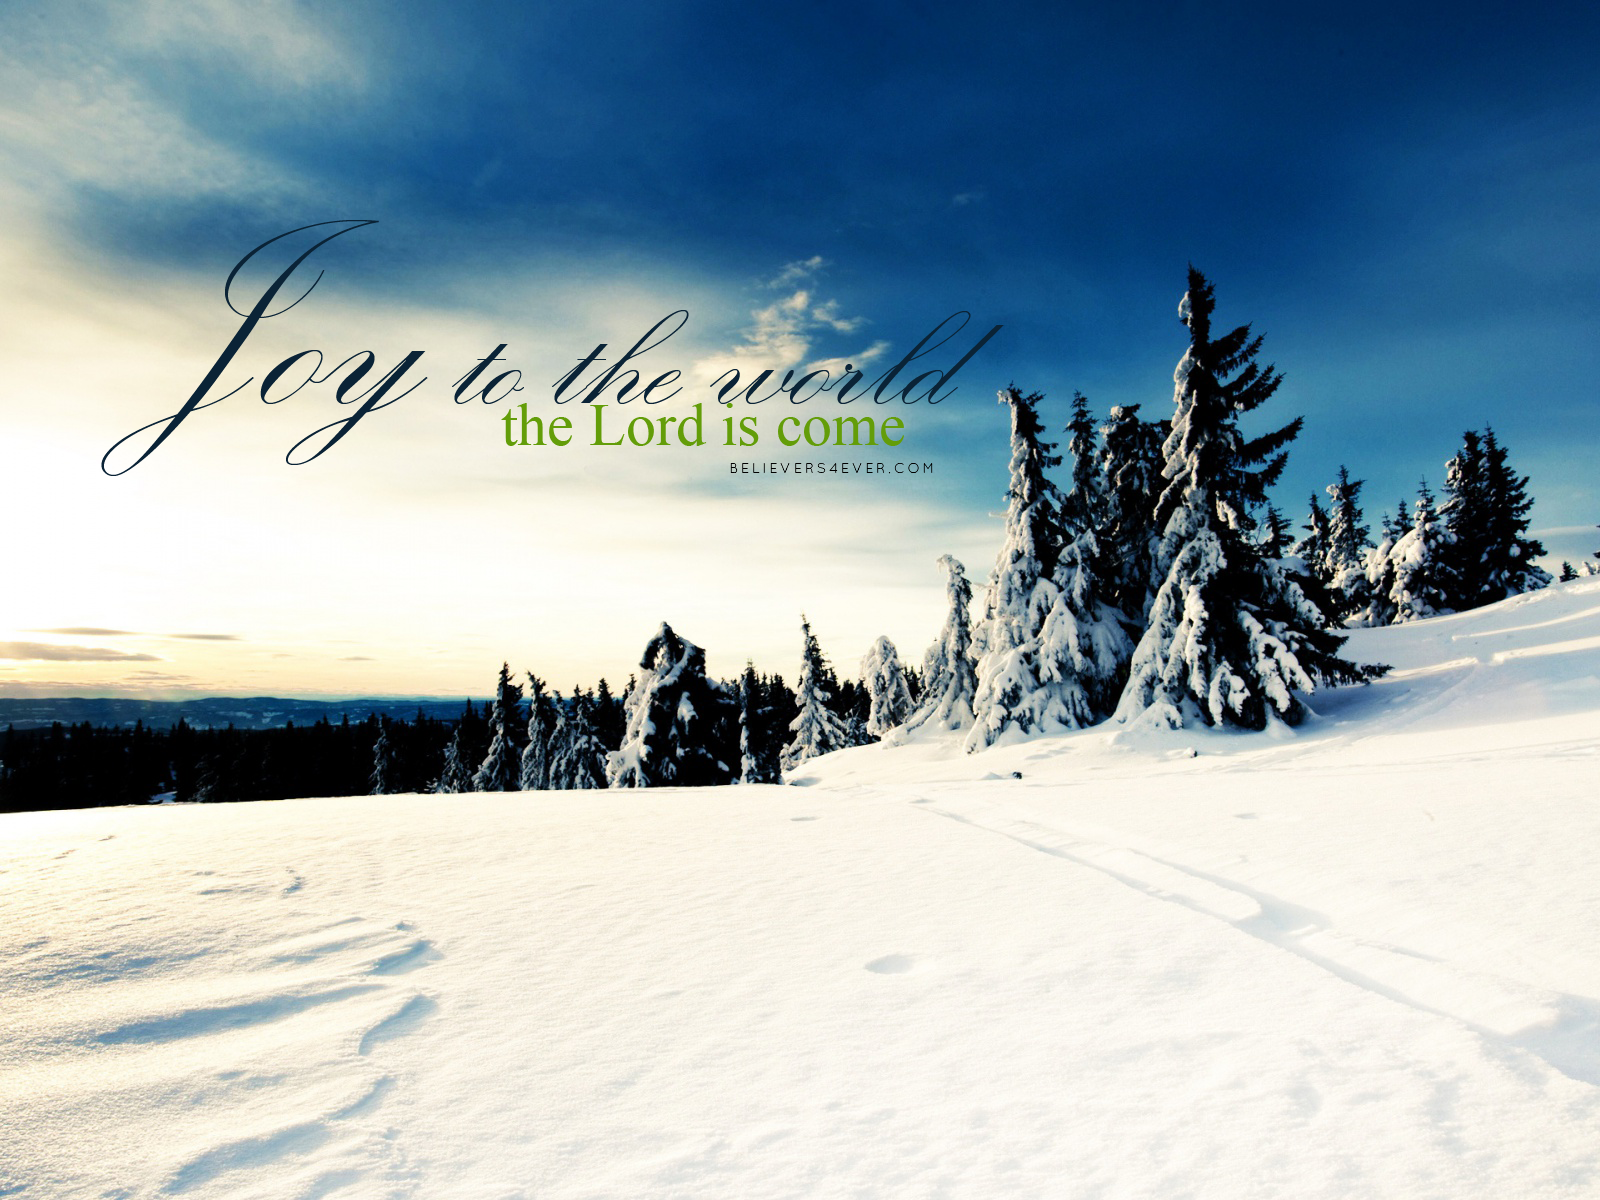 Joy to the world Christian Christmas desktop wallpaper